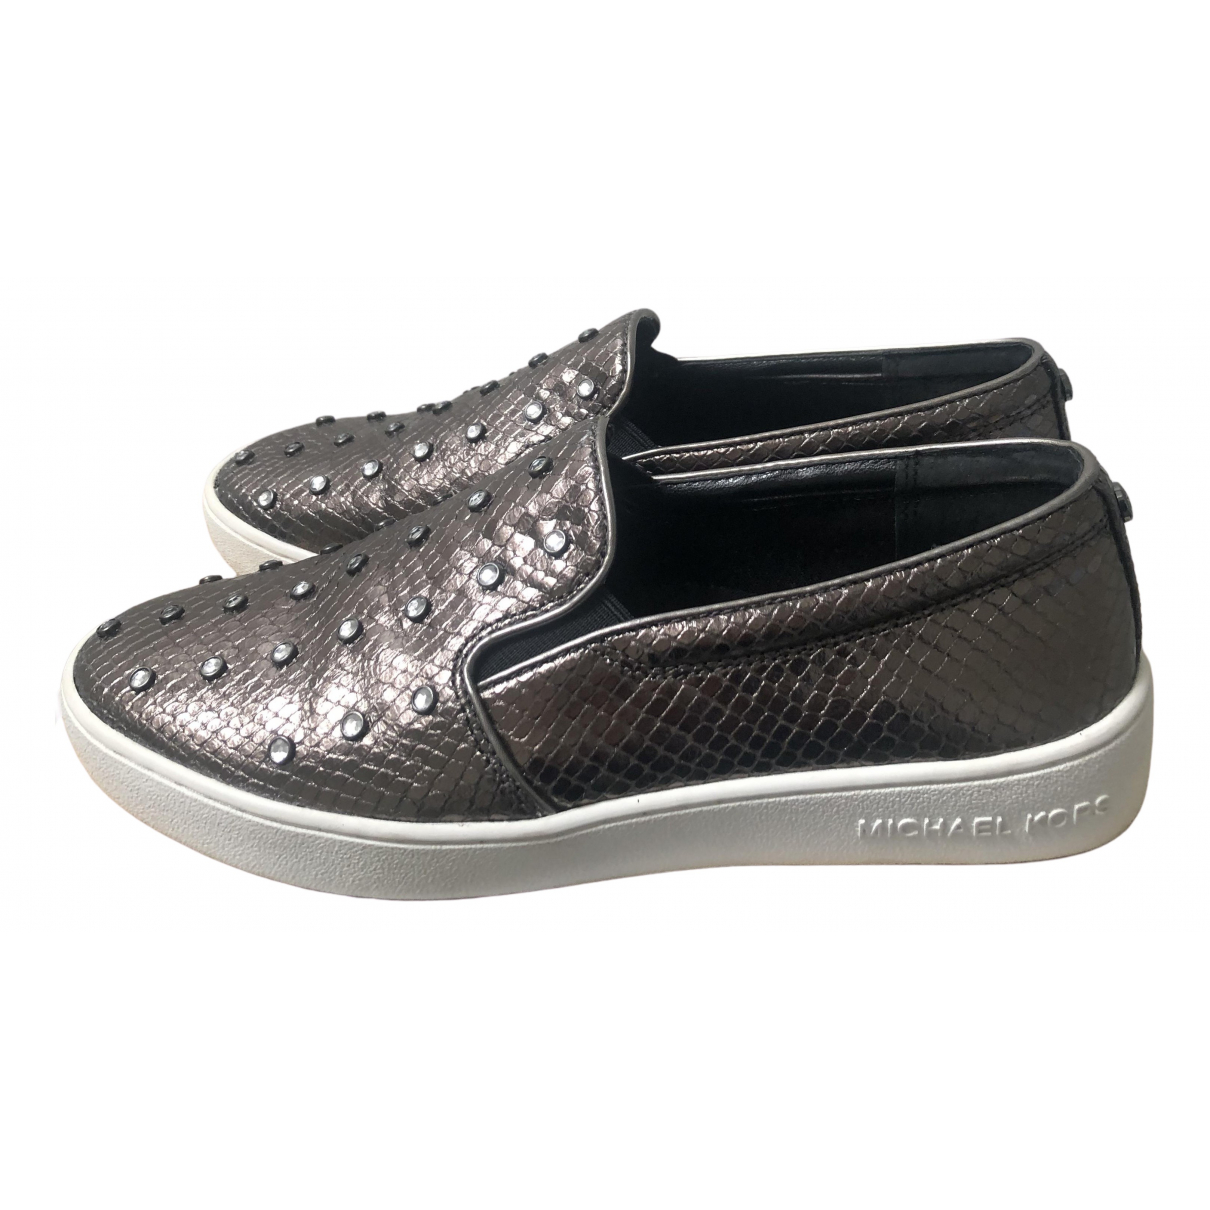 Michael Kors N Metallic Leather Trainers for Women 6.5 US